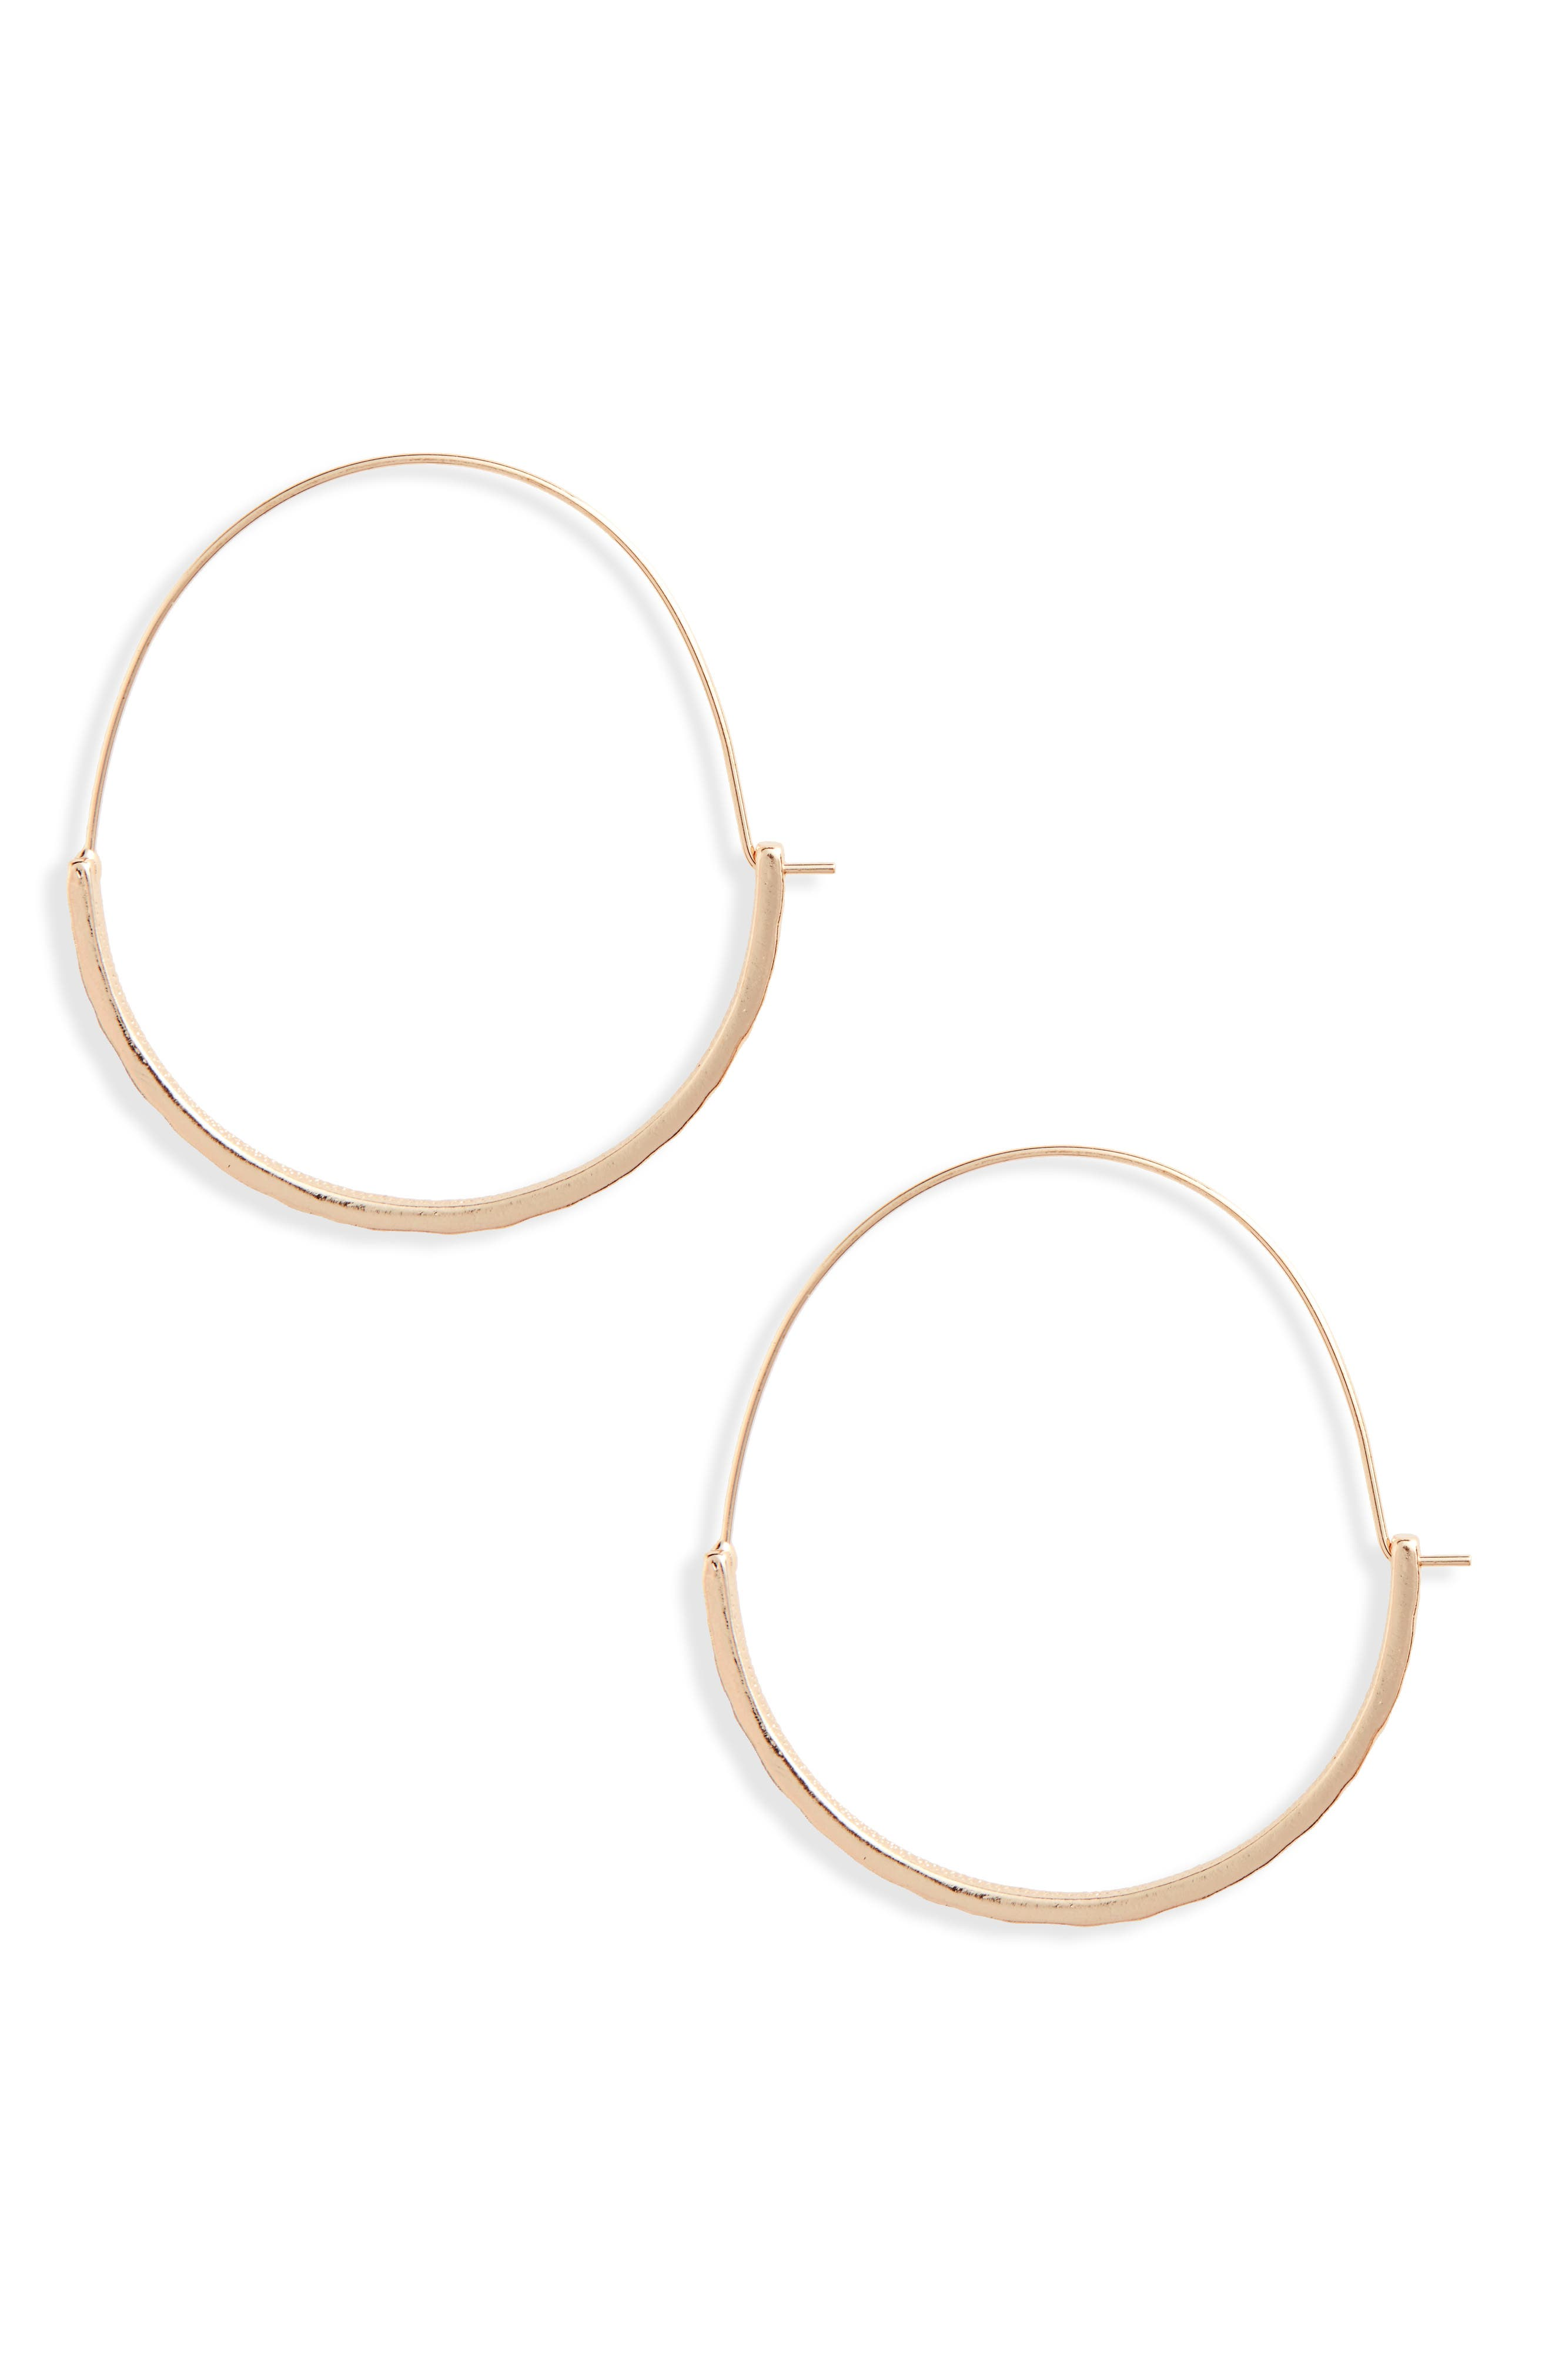 Alternate Image 1 Selected - BP. Thin Hammered Hoops